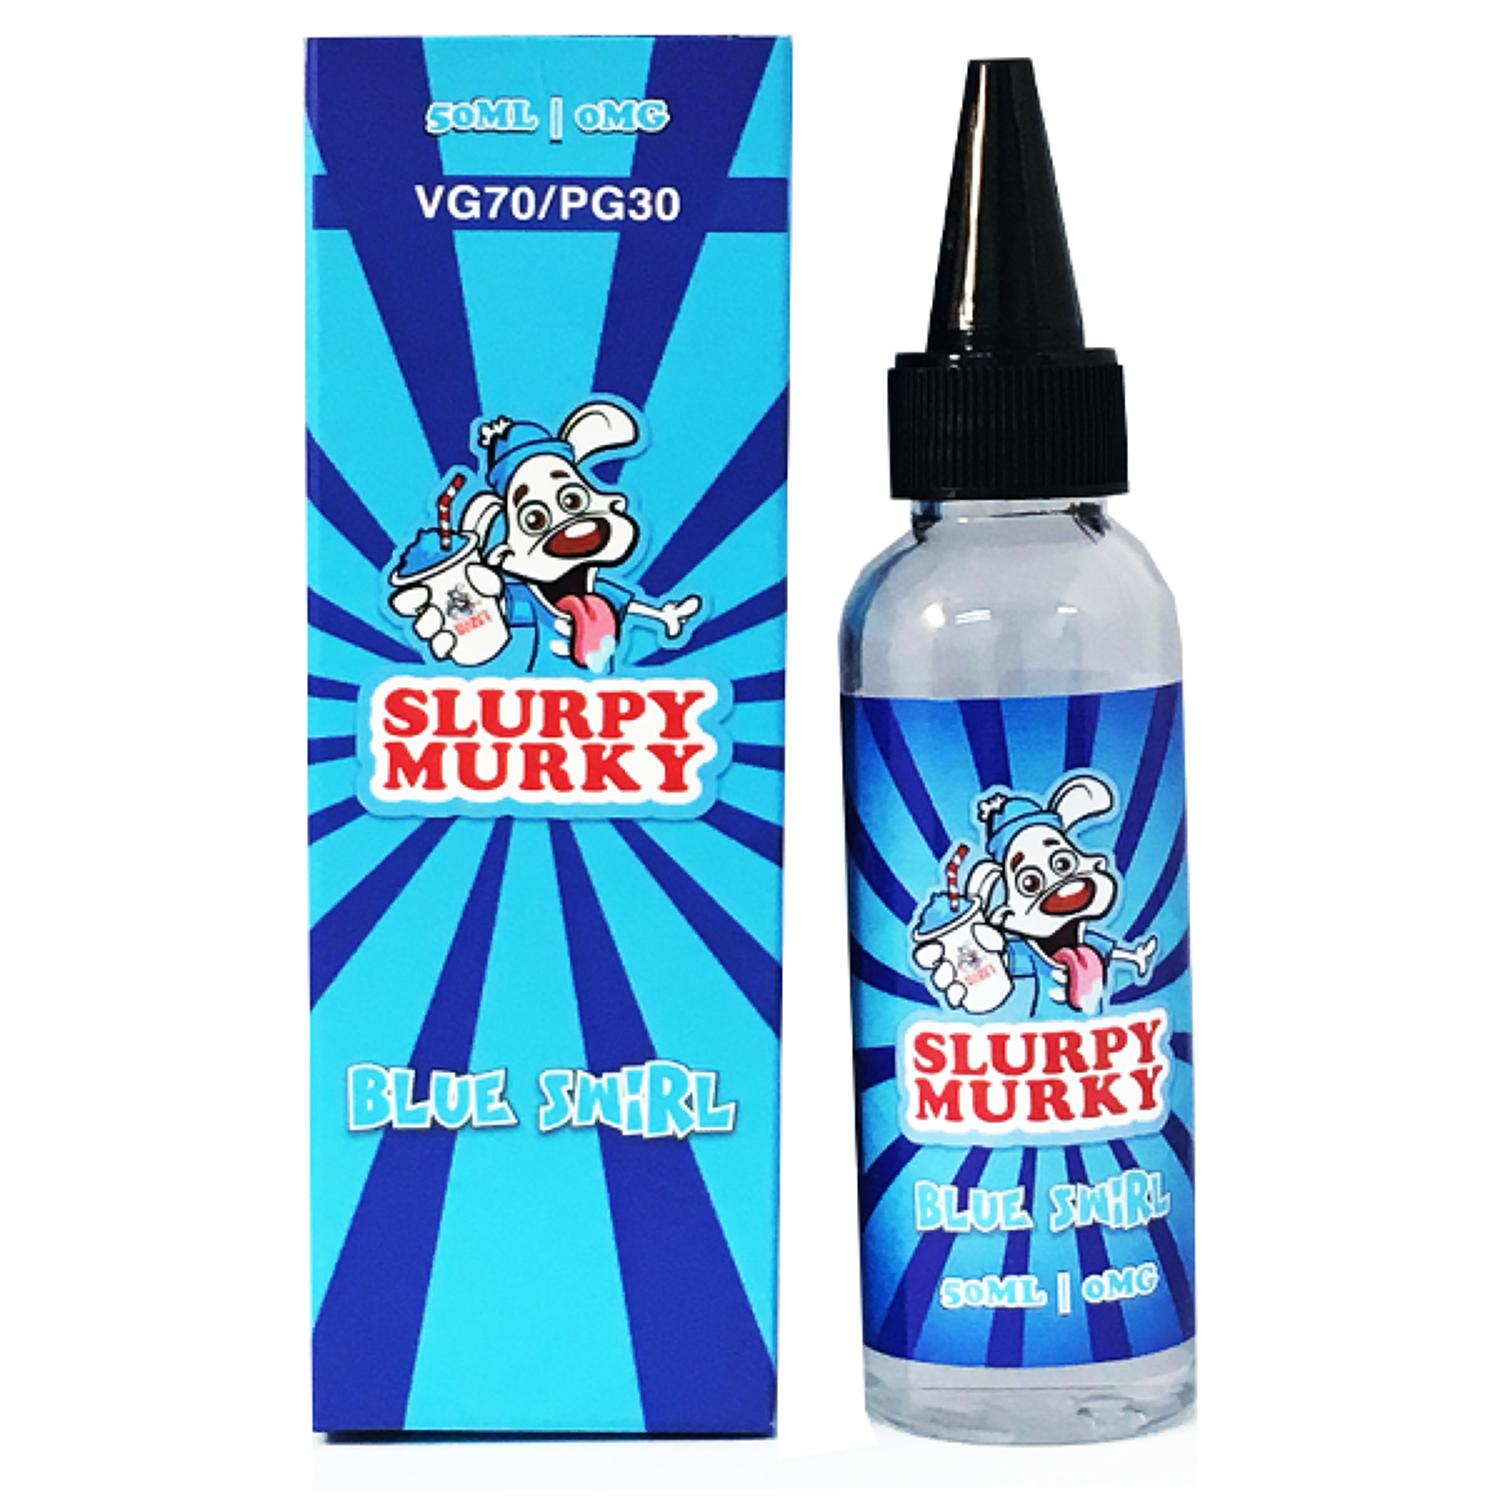 Slurpy Murky - Blue Swirl - 50ml